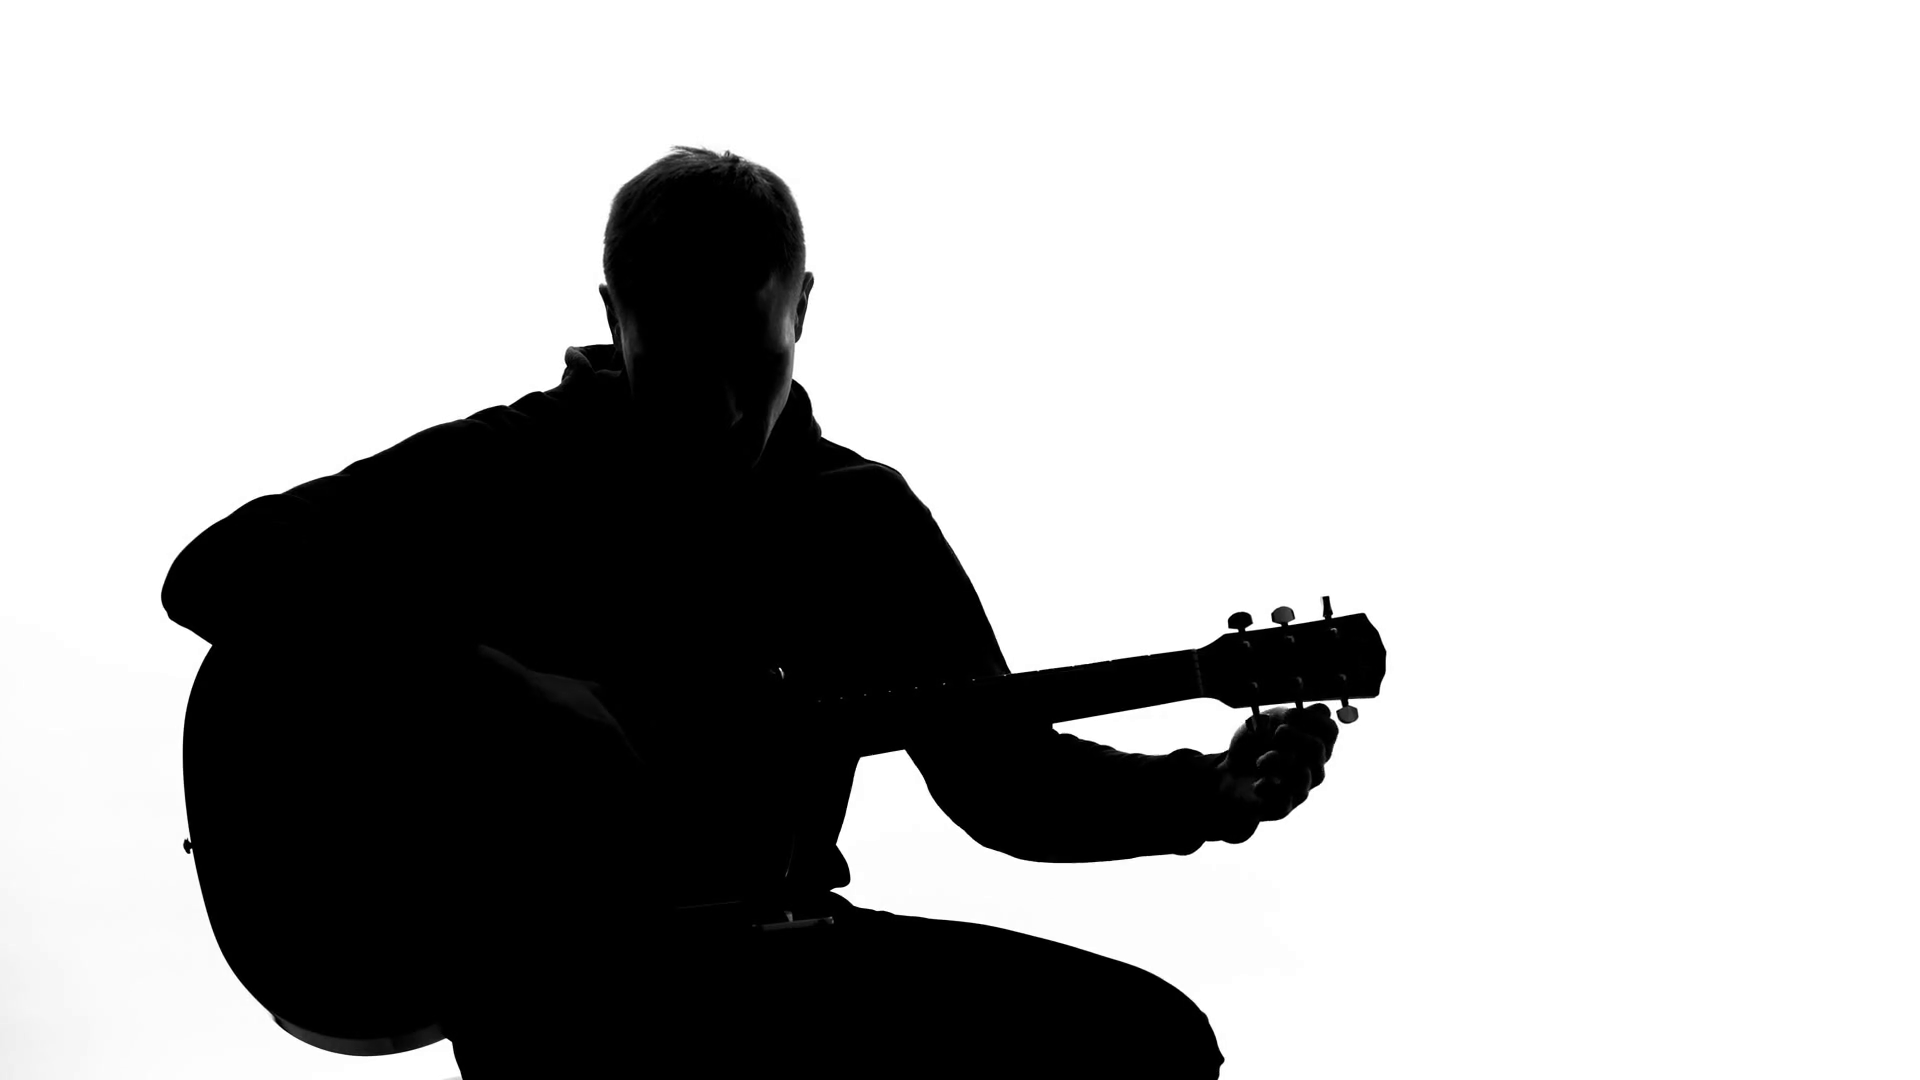 man with guitar silhouette silhouette of a man playing guitar stock photo man guitar with silhouette